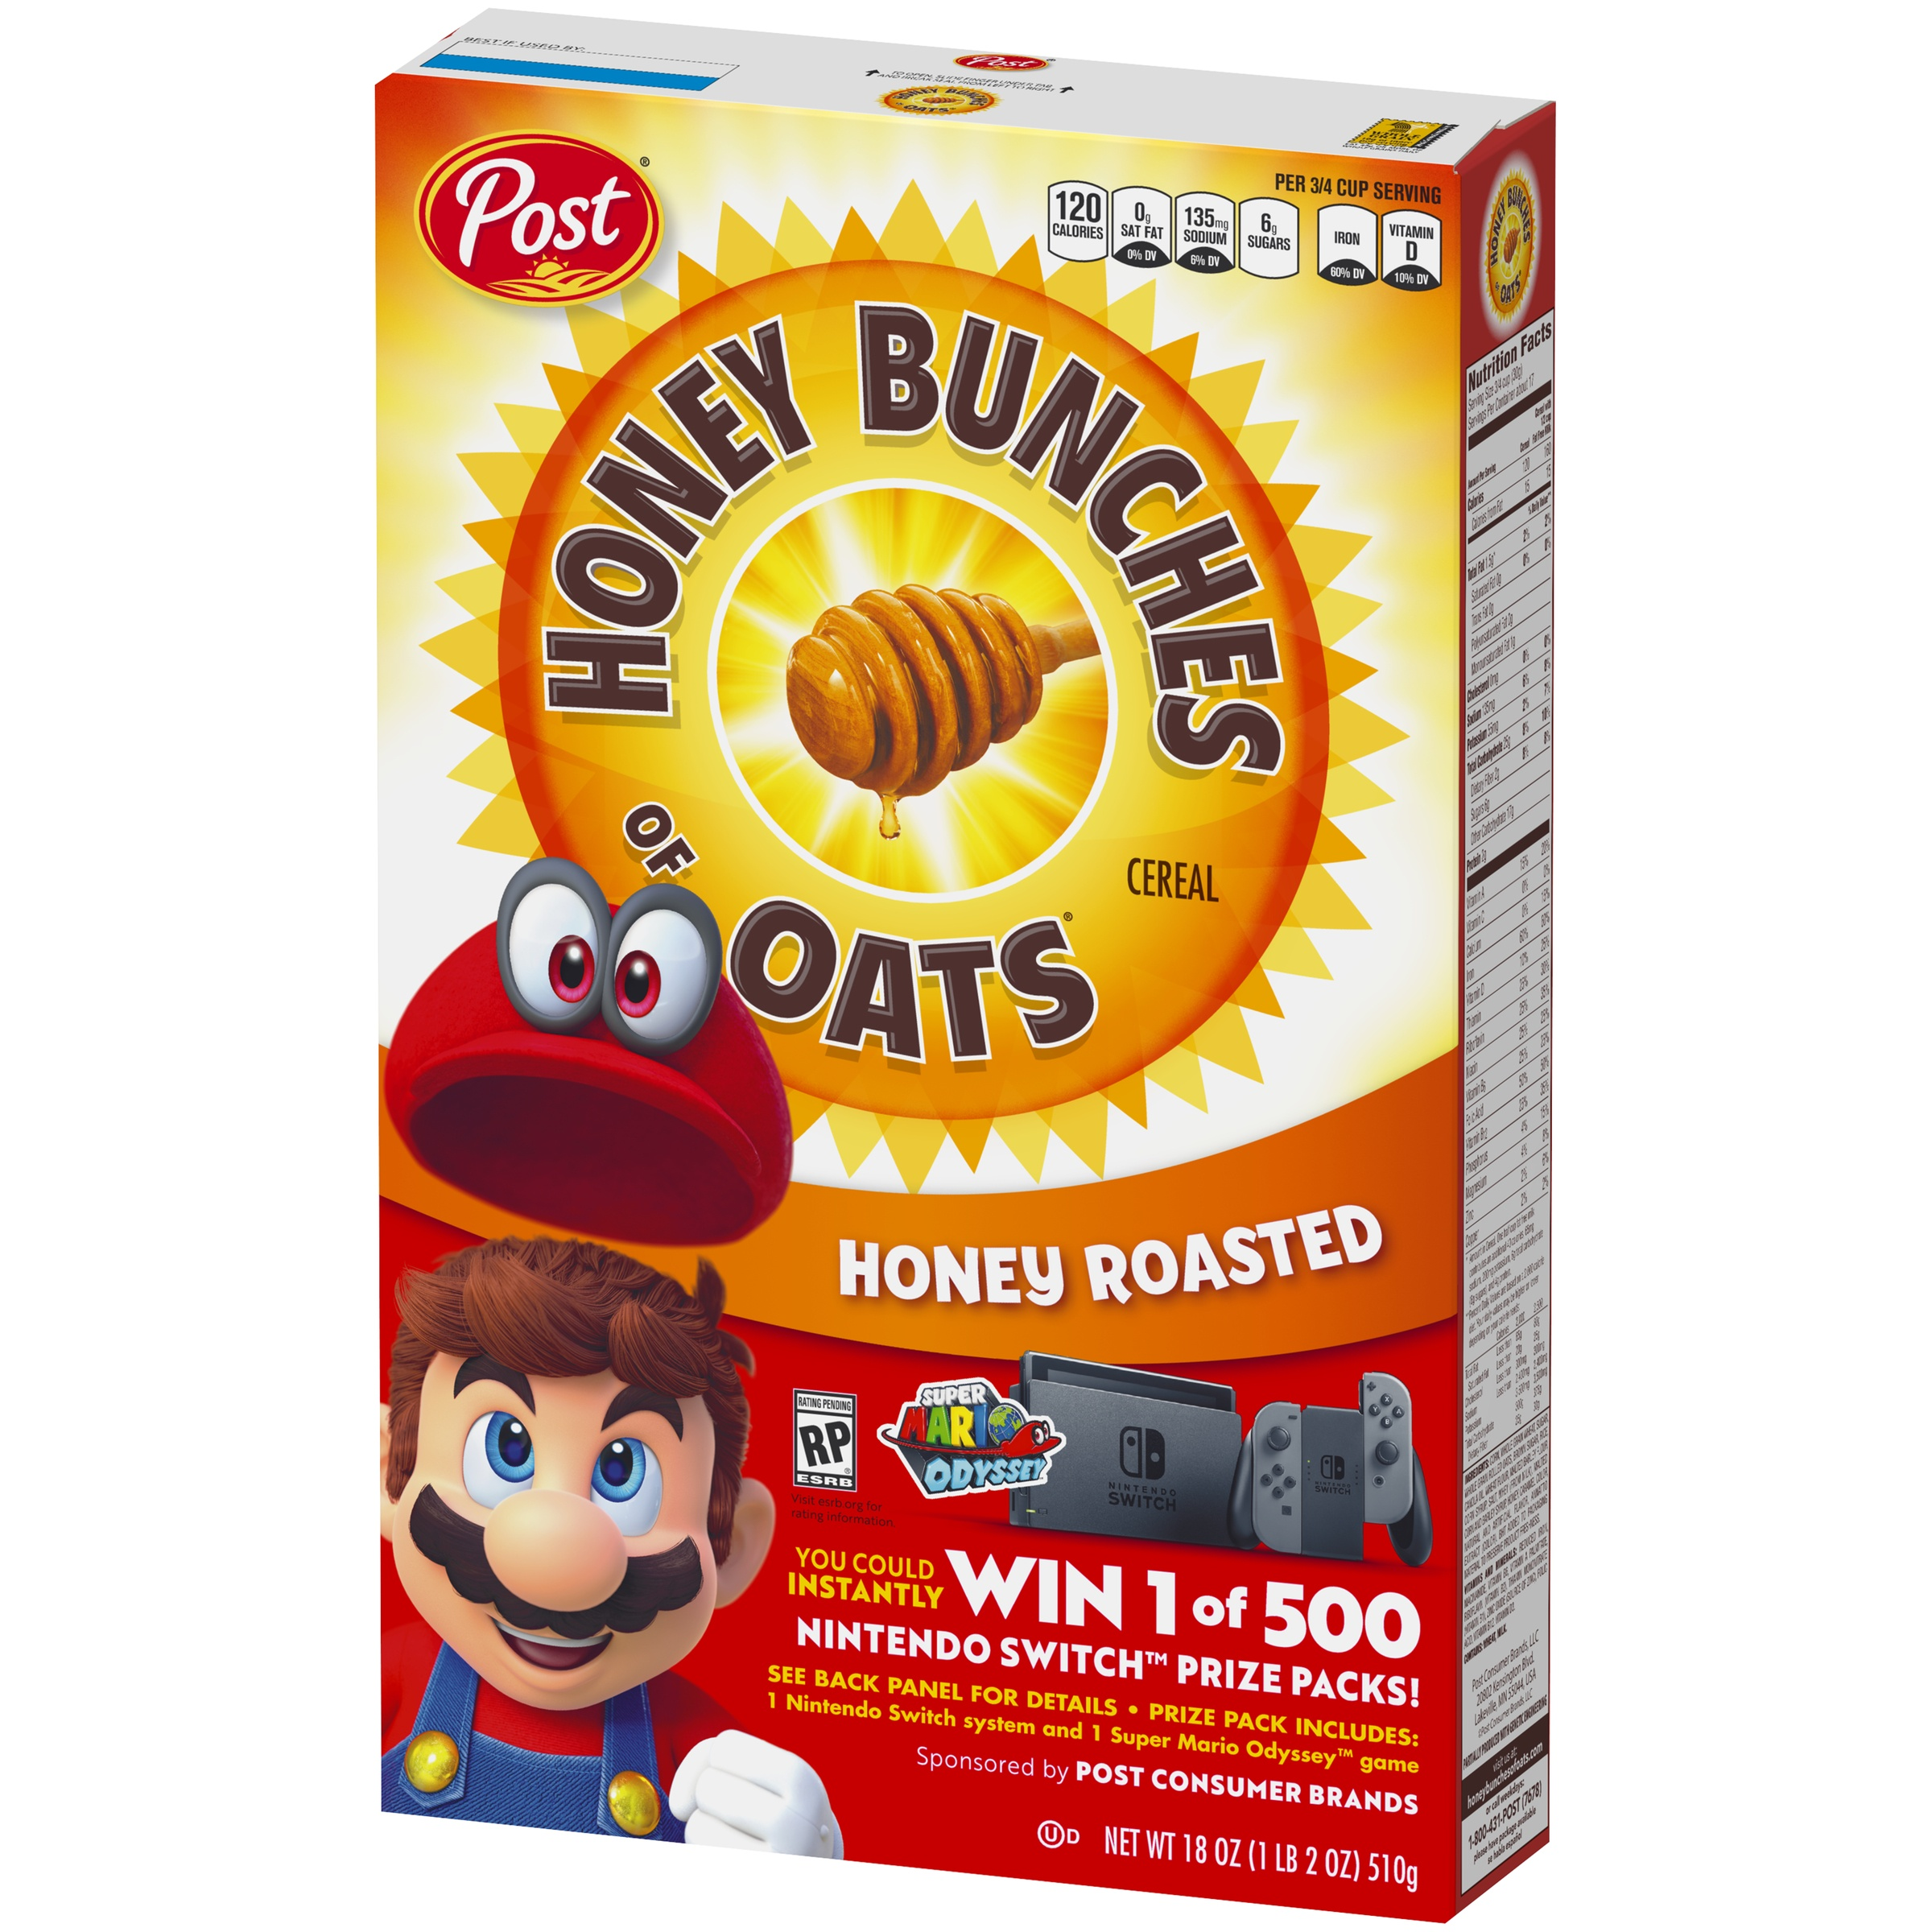 post sweepstakes nintendo switch code nintendo switch is the prize inside post cereal products 2106